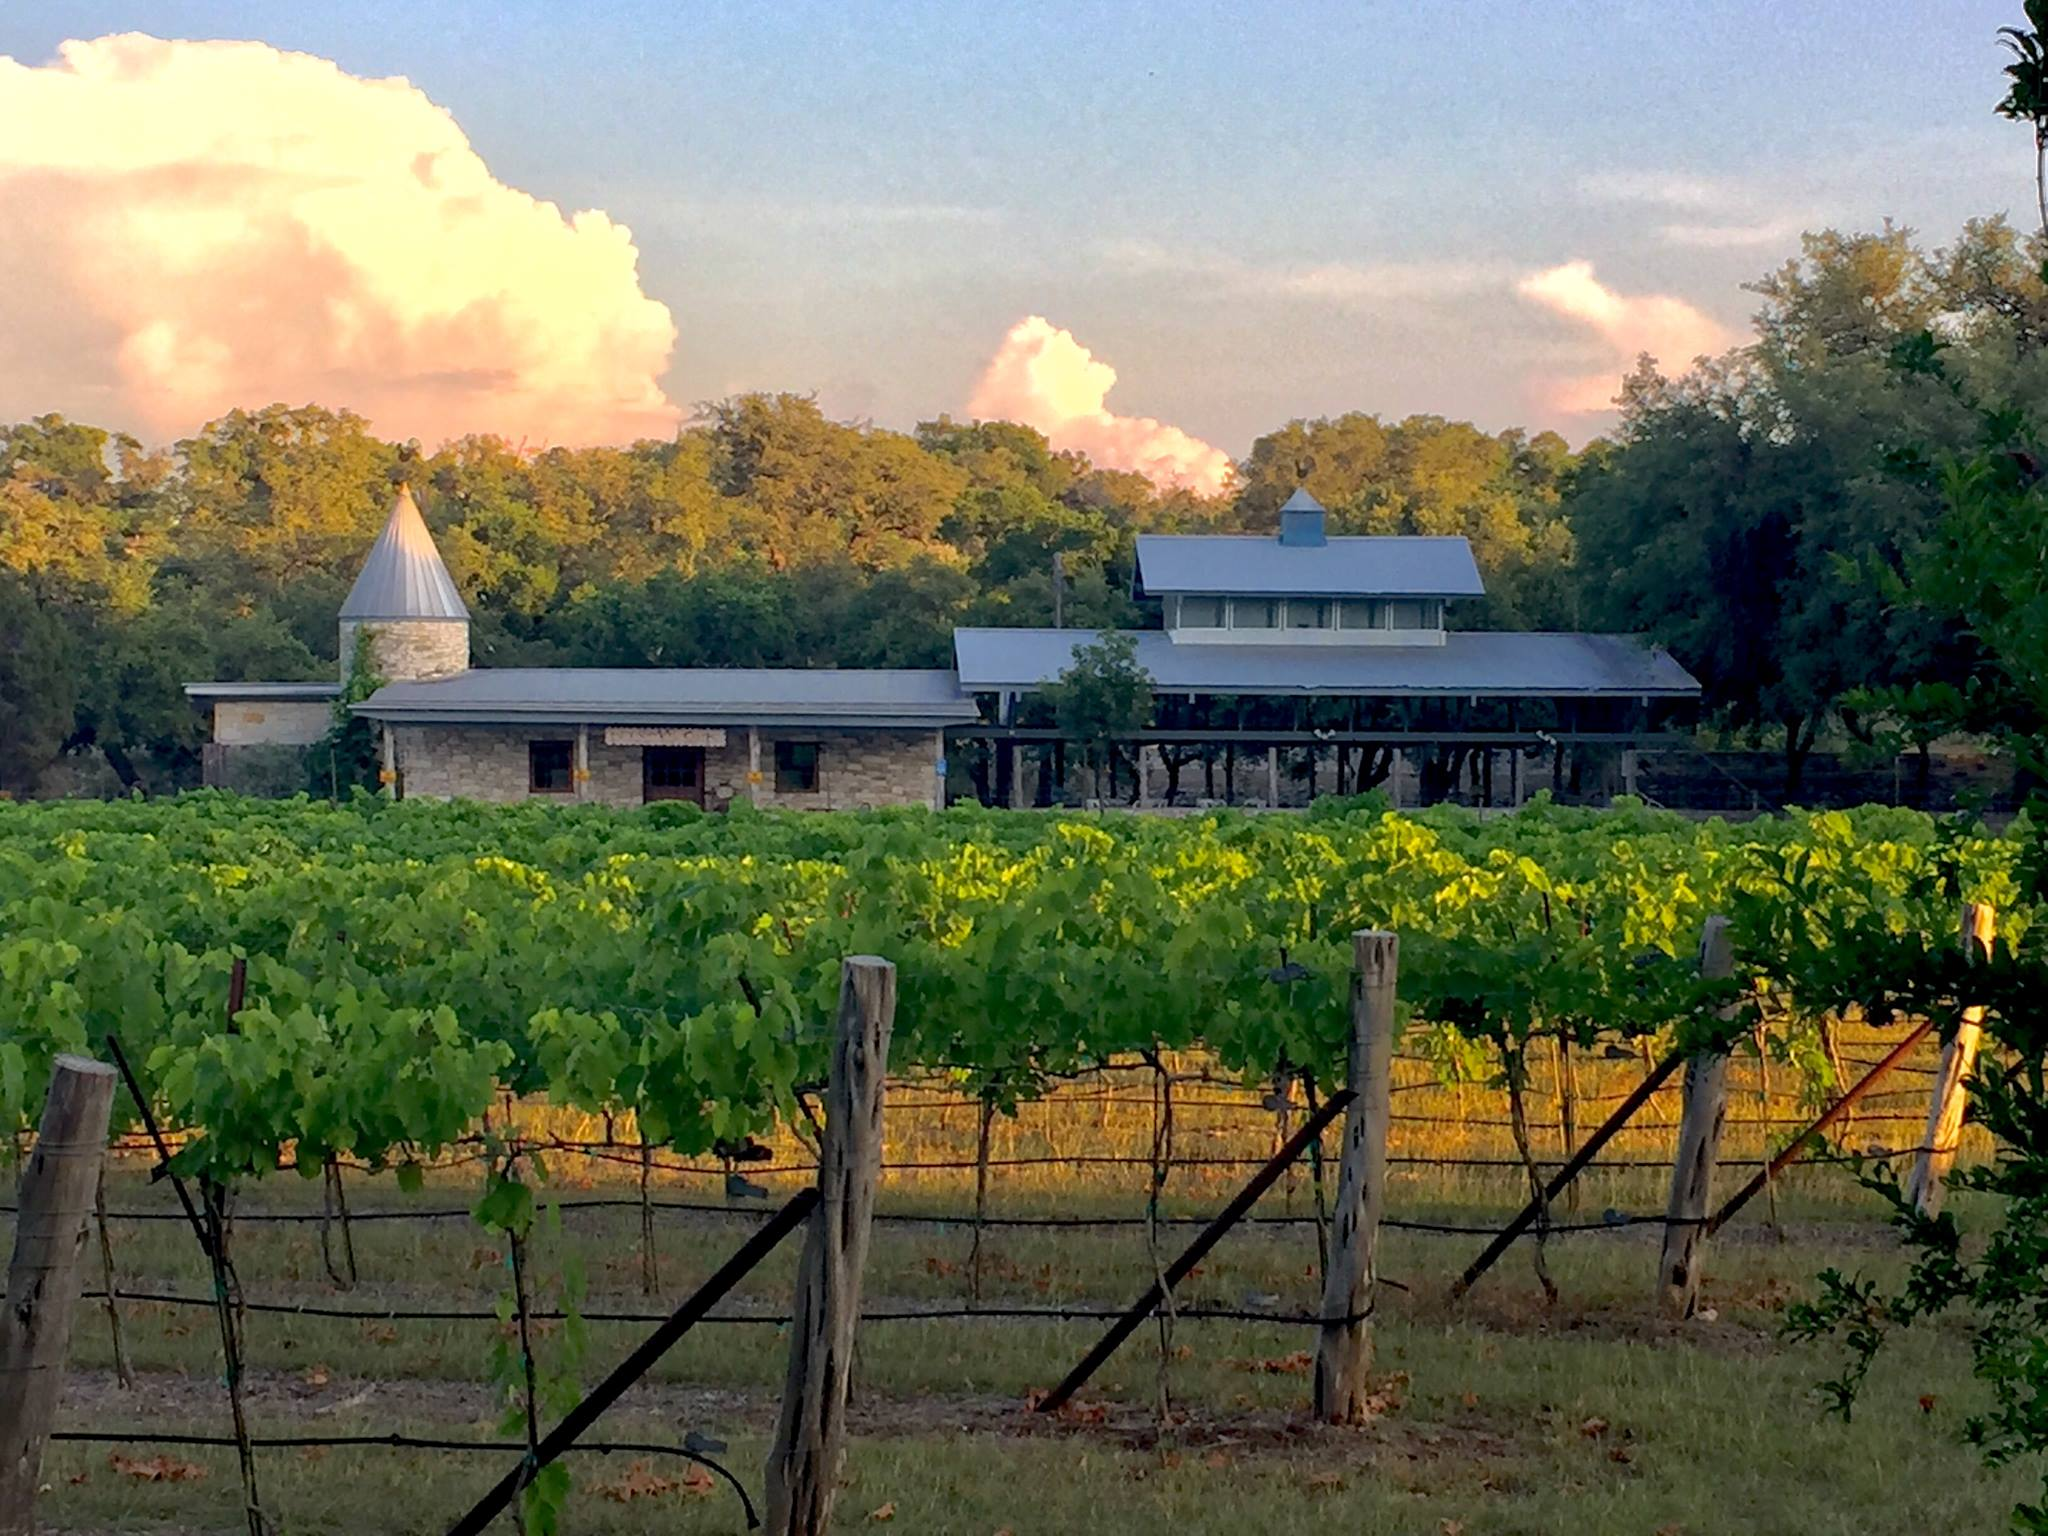 """A Texas original offering beautiful vineyards, great wine and a memorable time. Hidden off of 46, just a few short miles from New Braunfels, you will find our tasting room tucked behind rows of vineyards. Grown on the estate is our pioneer grape """"Black Spanish"""". Before or after your tasting find the perfect spot under the oaks to enjoy your wine. If you are joining us on the weekend kick back and relax as you listen to live music while enjoying a meal from the food truck."""